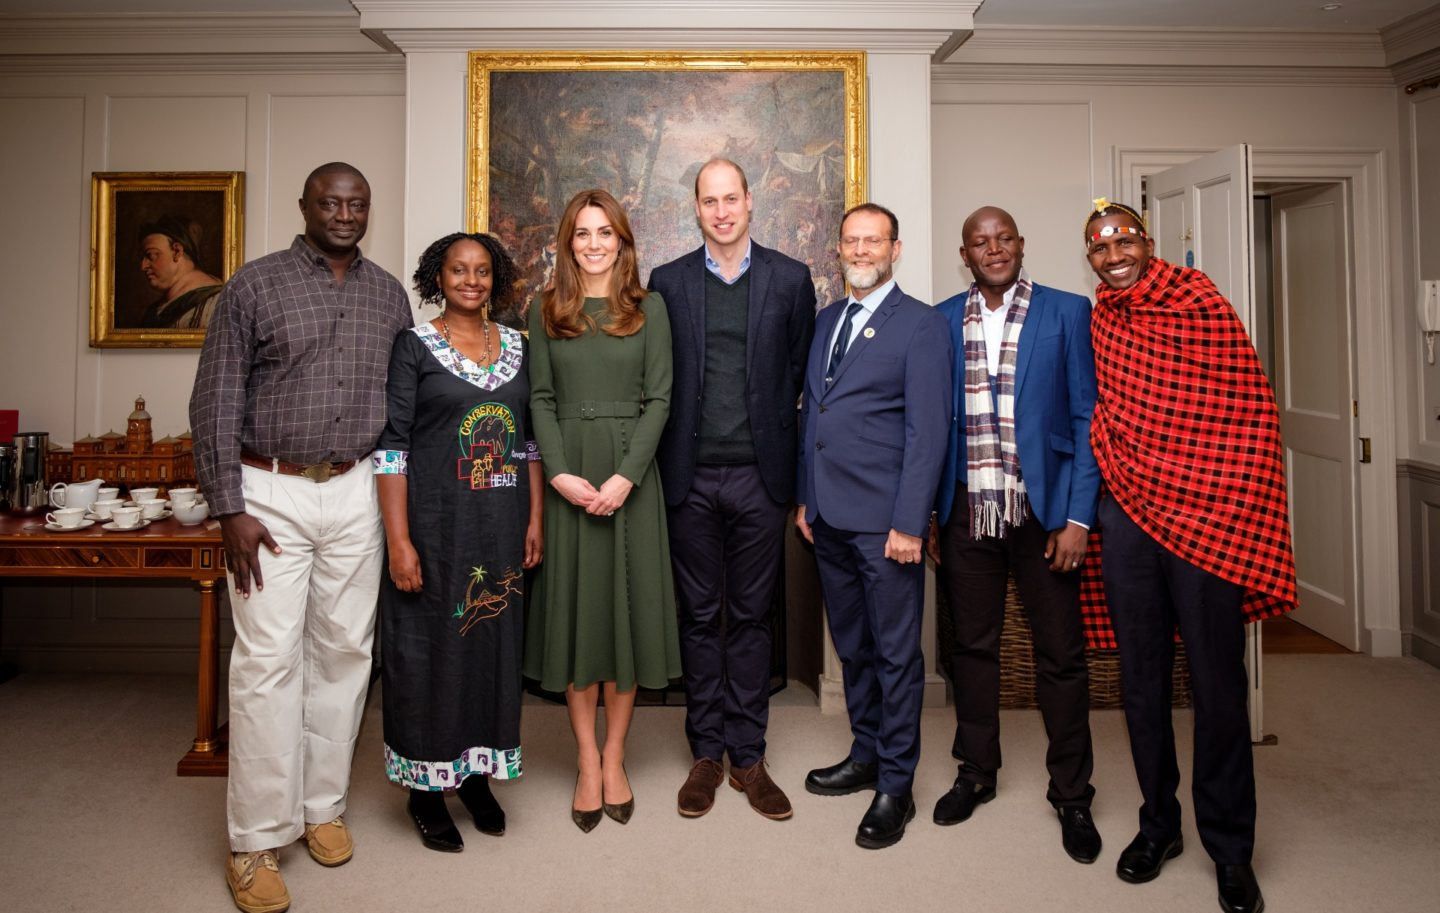 Tusk Conservation Awards 2019 - Winners and Finalists at Kensington Palace 20th November